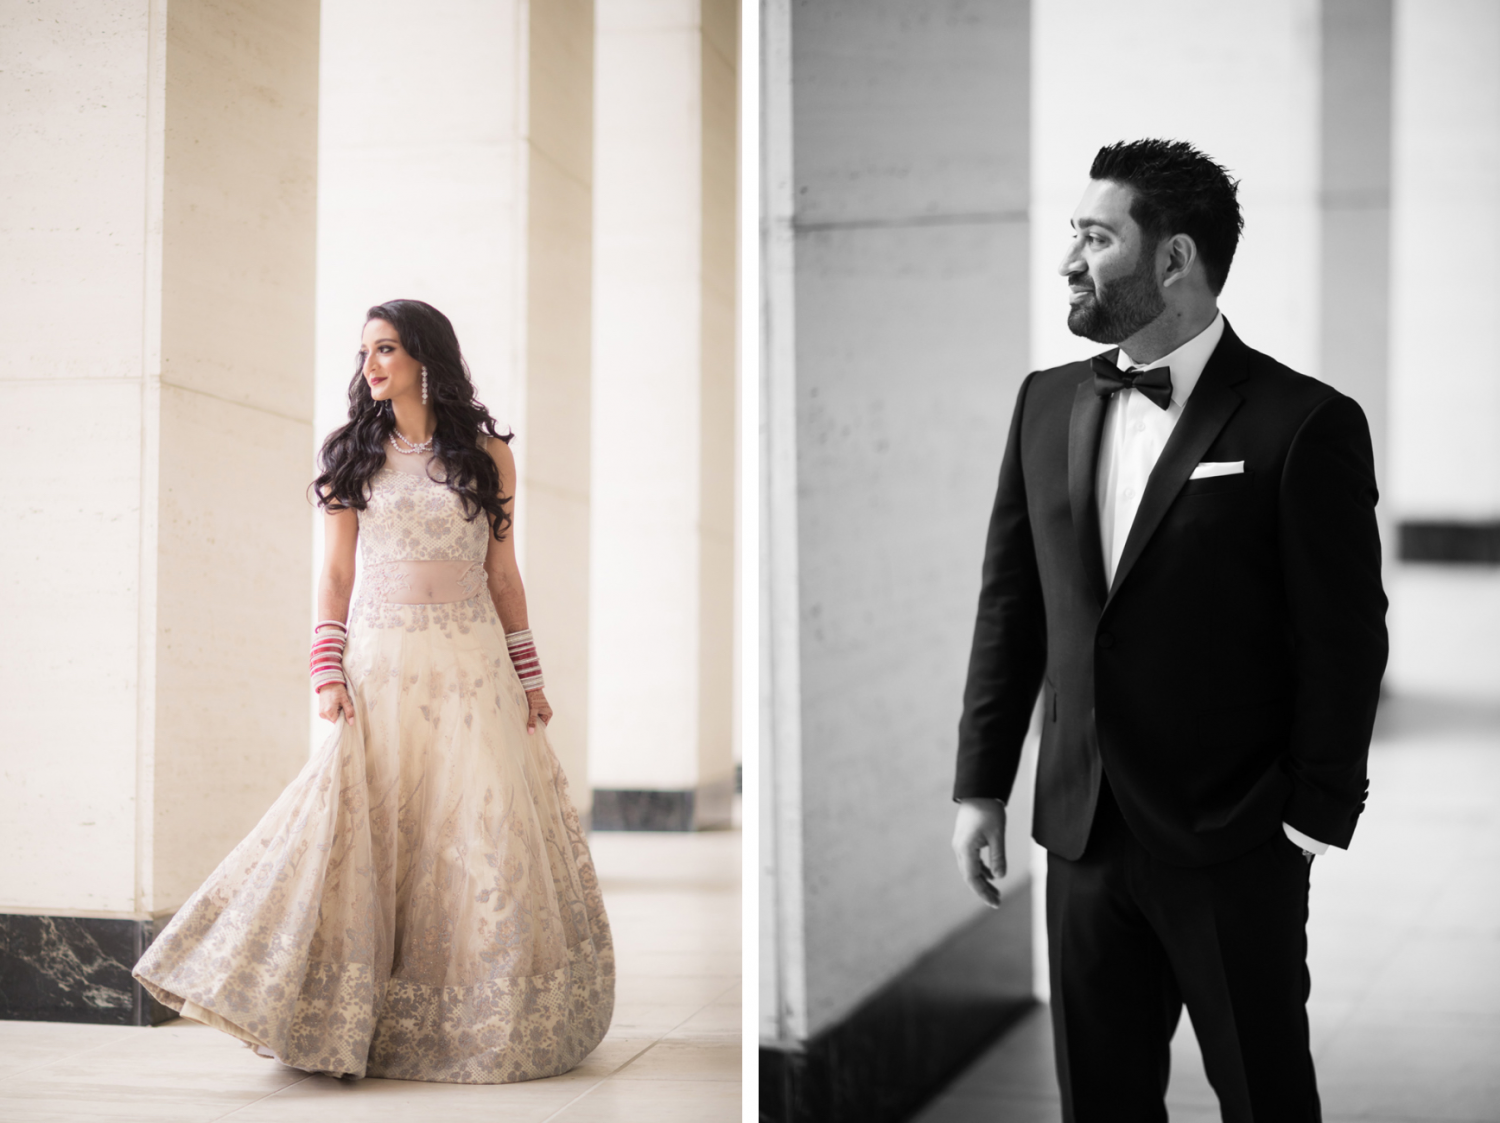 Wedding Photography Tips And Ideas For Beginners